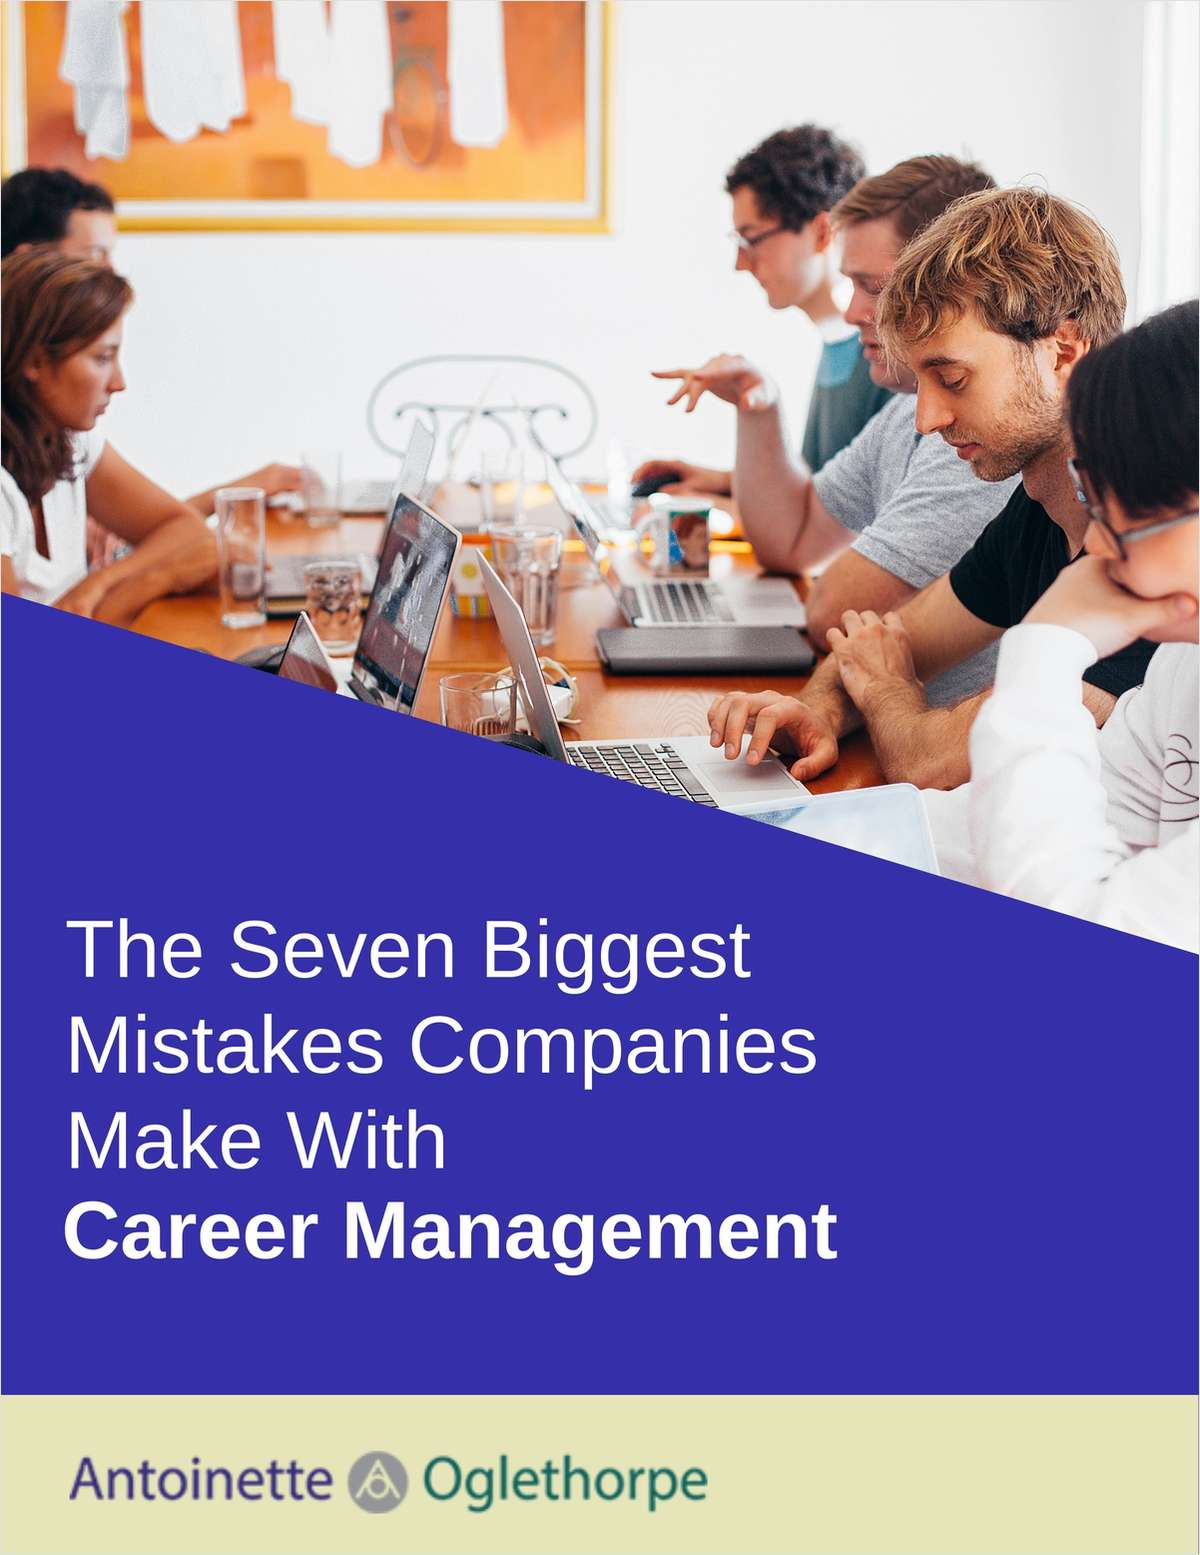 The Seven Biggest Mistakes Companies Make With Career Management